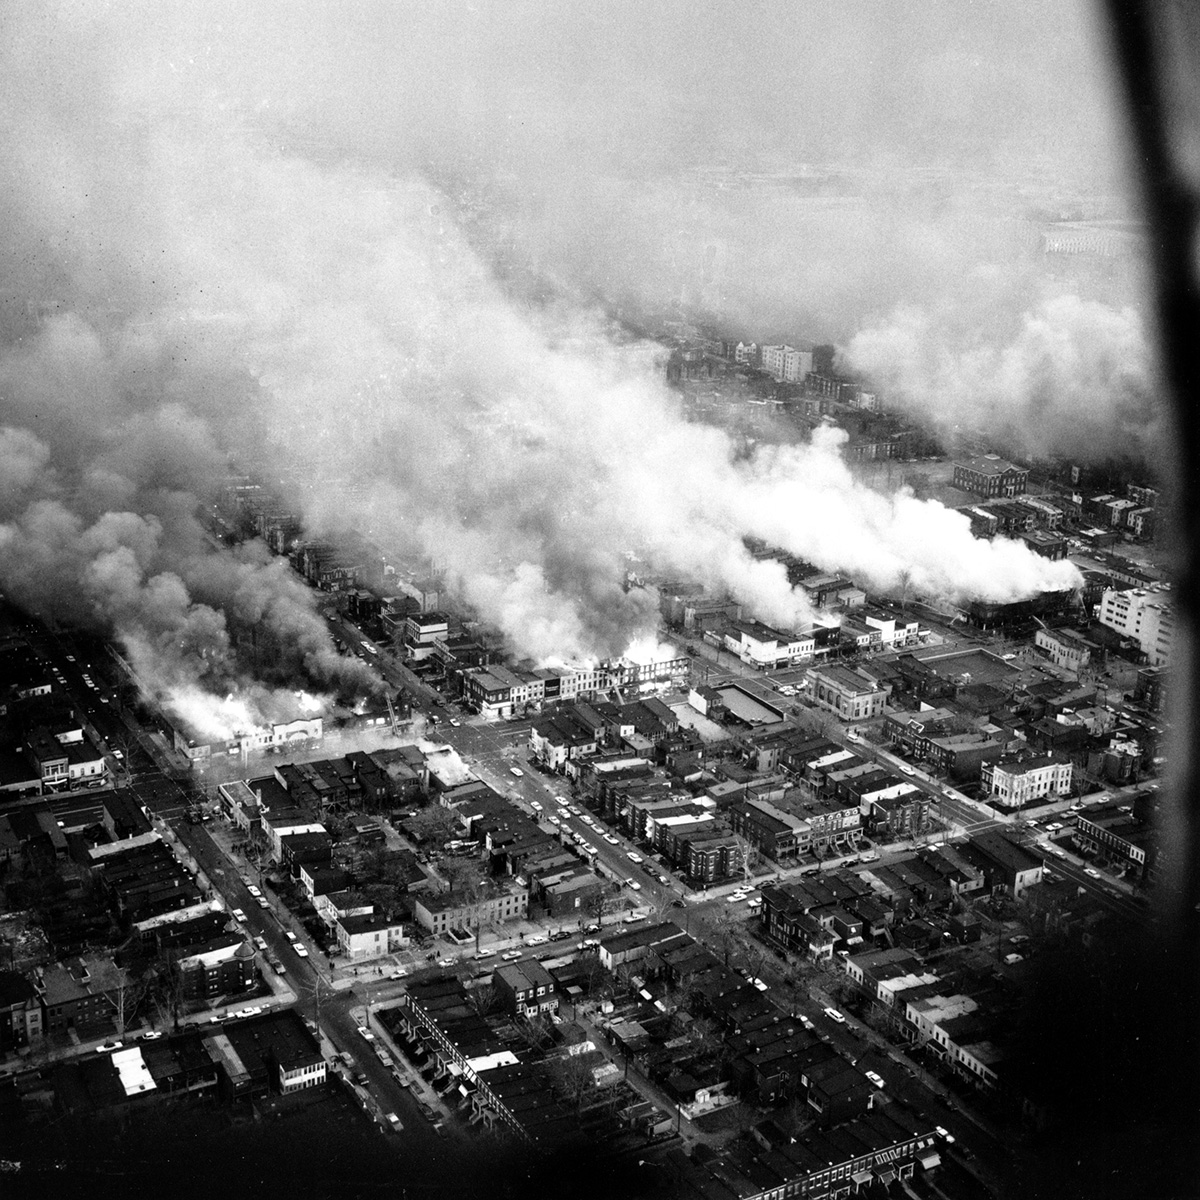 An aerial view of clouds of smoke rising from burning buildings in northeast Washington, D.C. on April 5, 1968. (Credit: AP Photo)